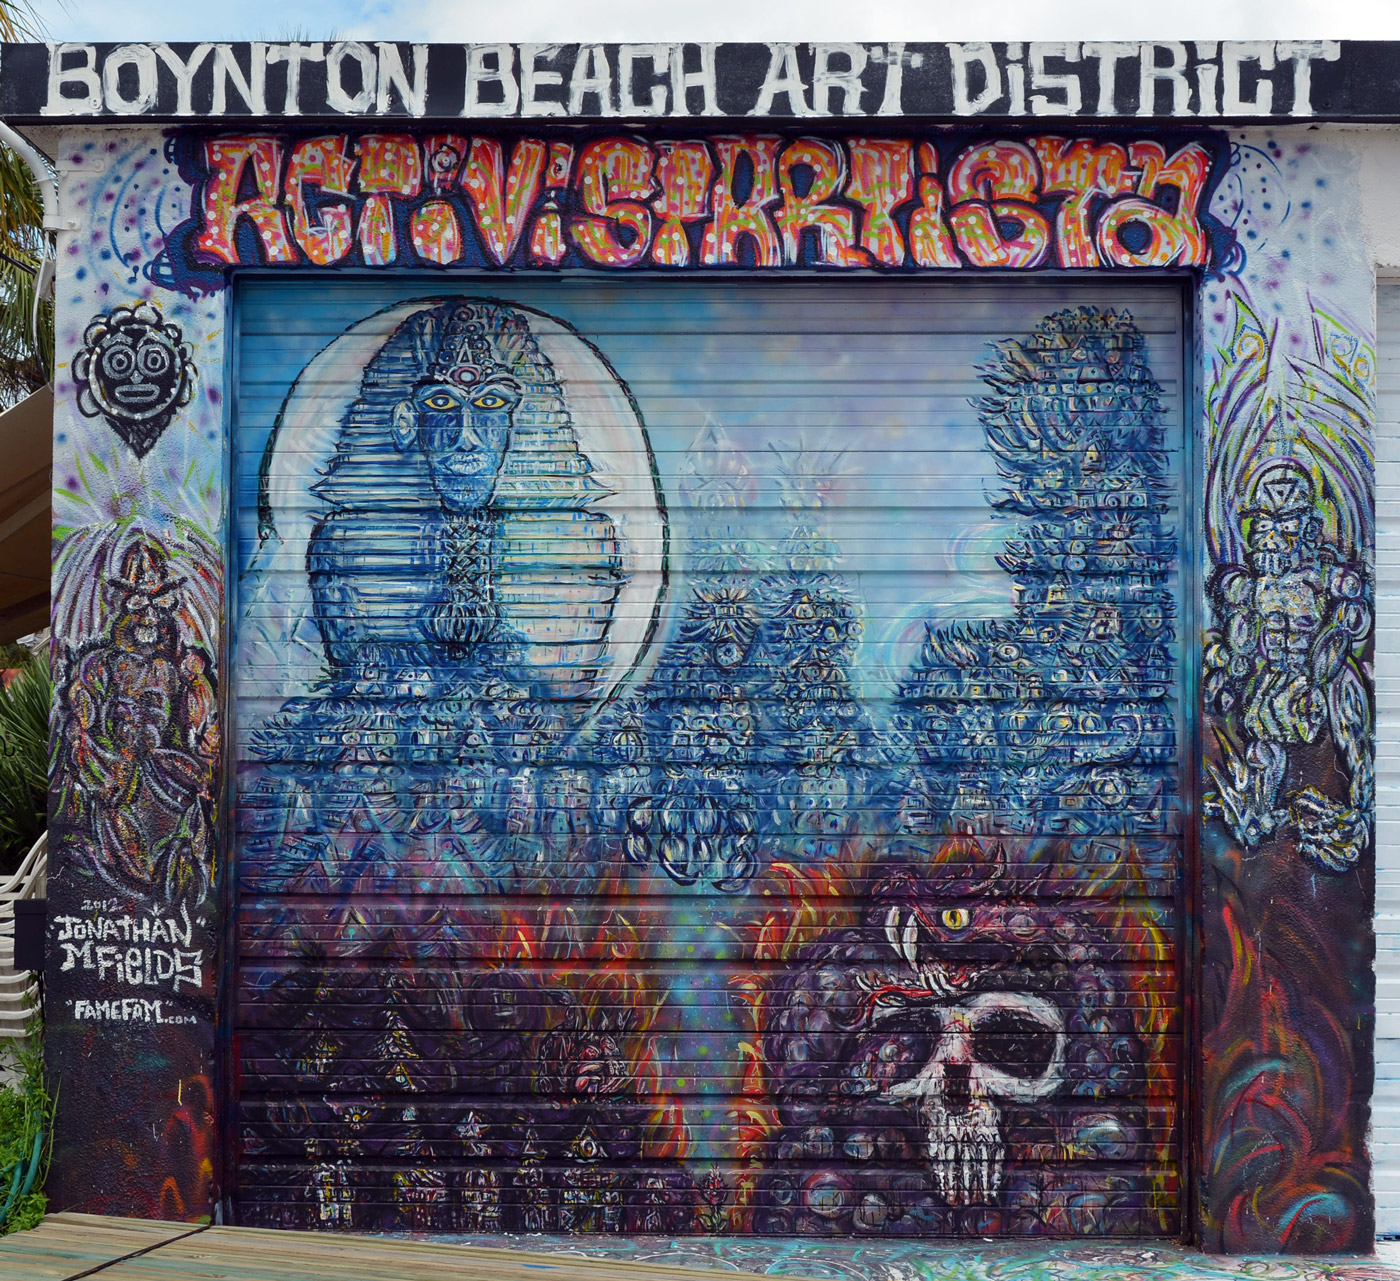 Boynton Beach Art District Mural